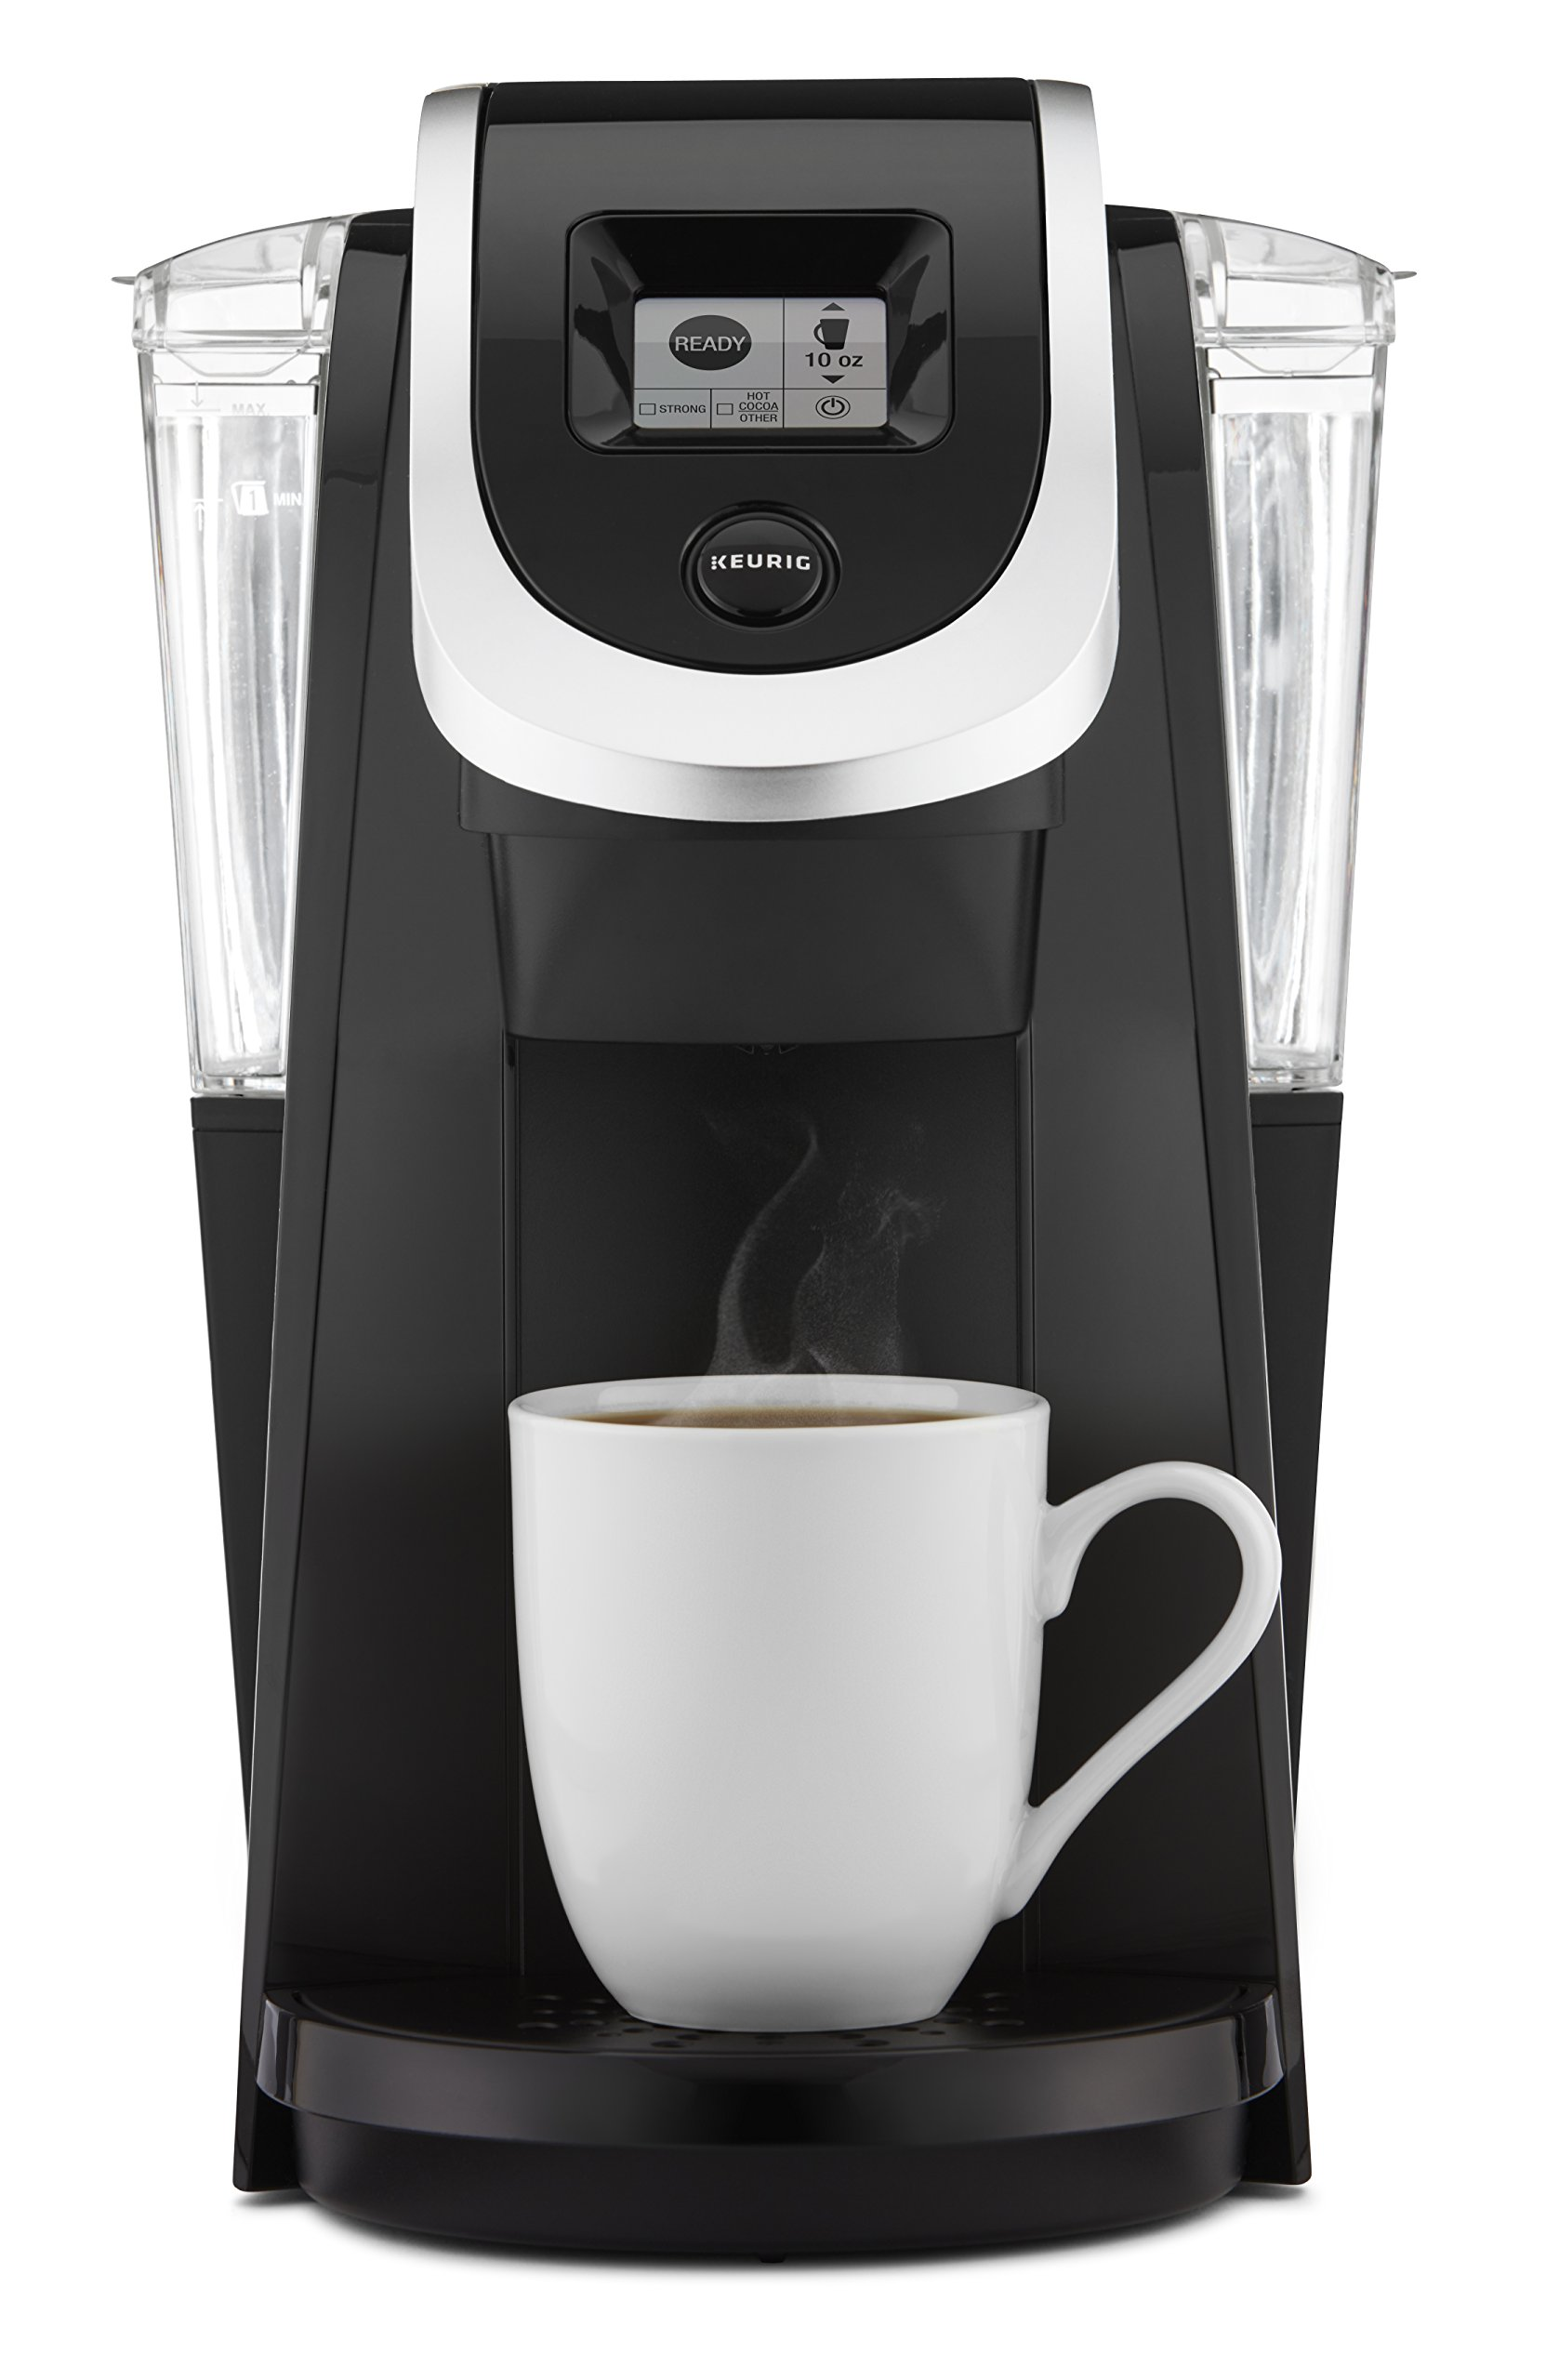 Keurig K250 Single Serve, K-Cup Pod Coffee Maker with Strength Control, Black by Keurig (Image #1)